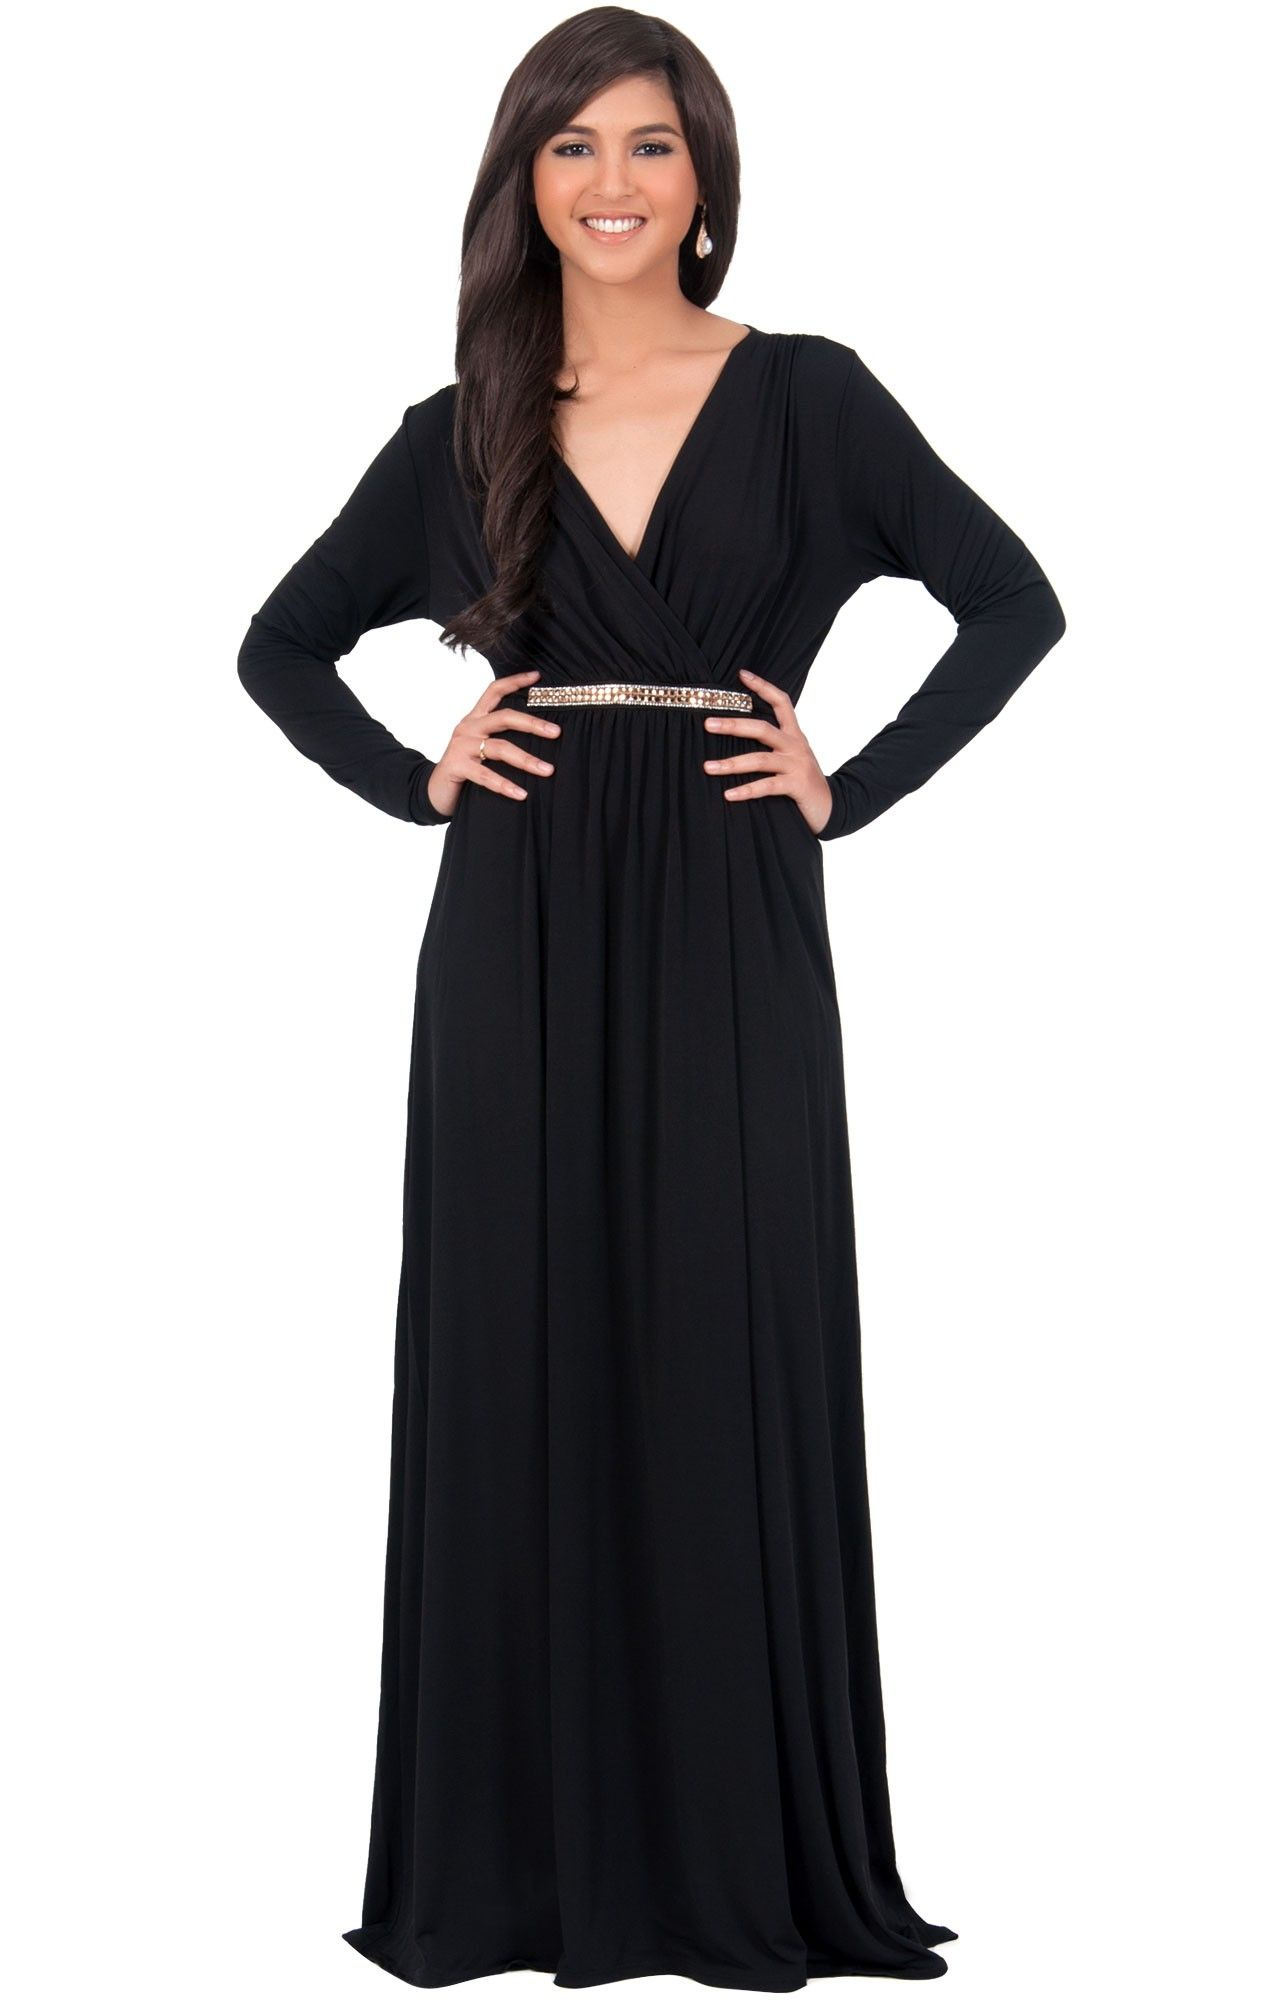 Black maxi dress with belt